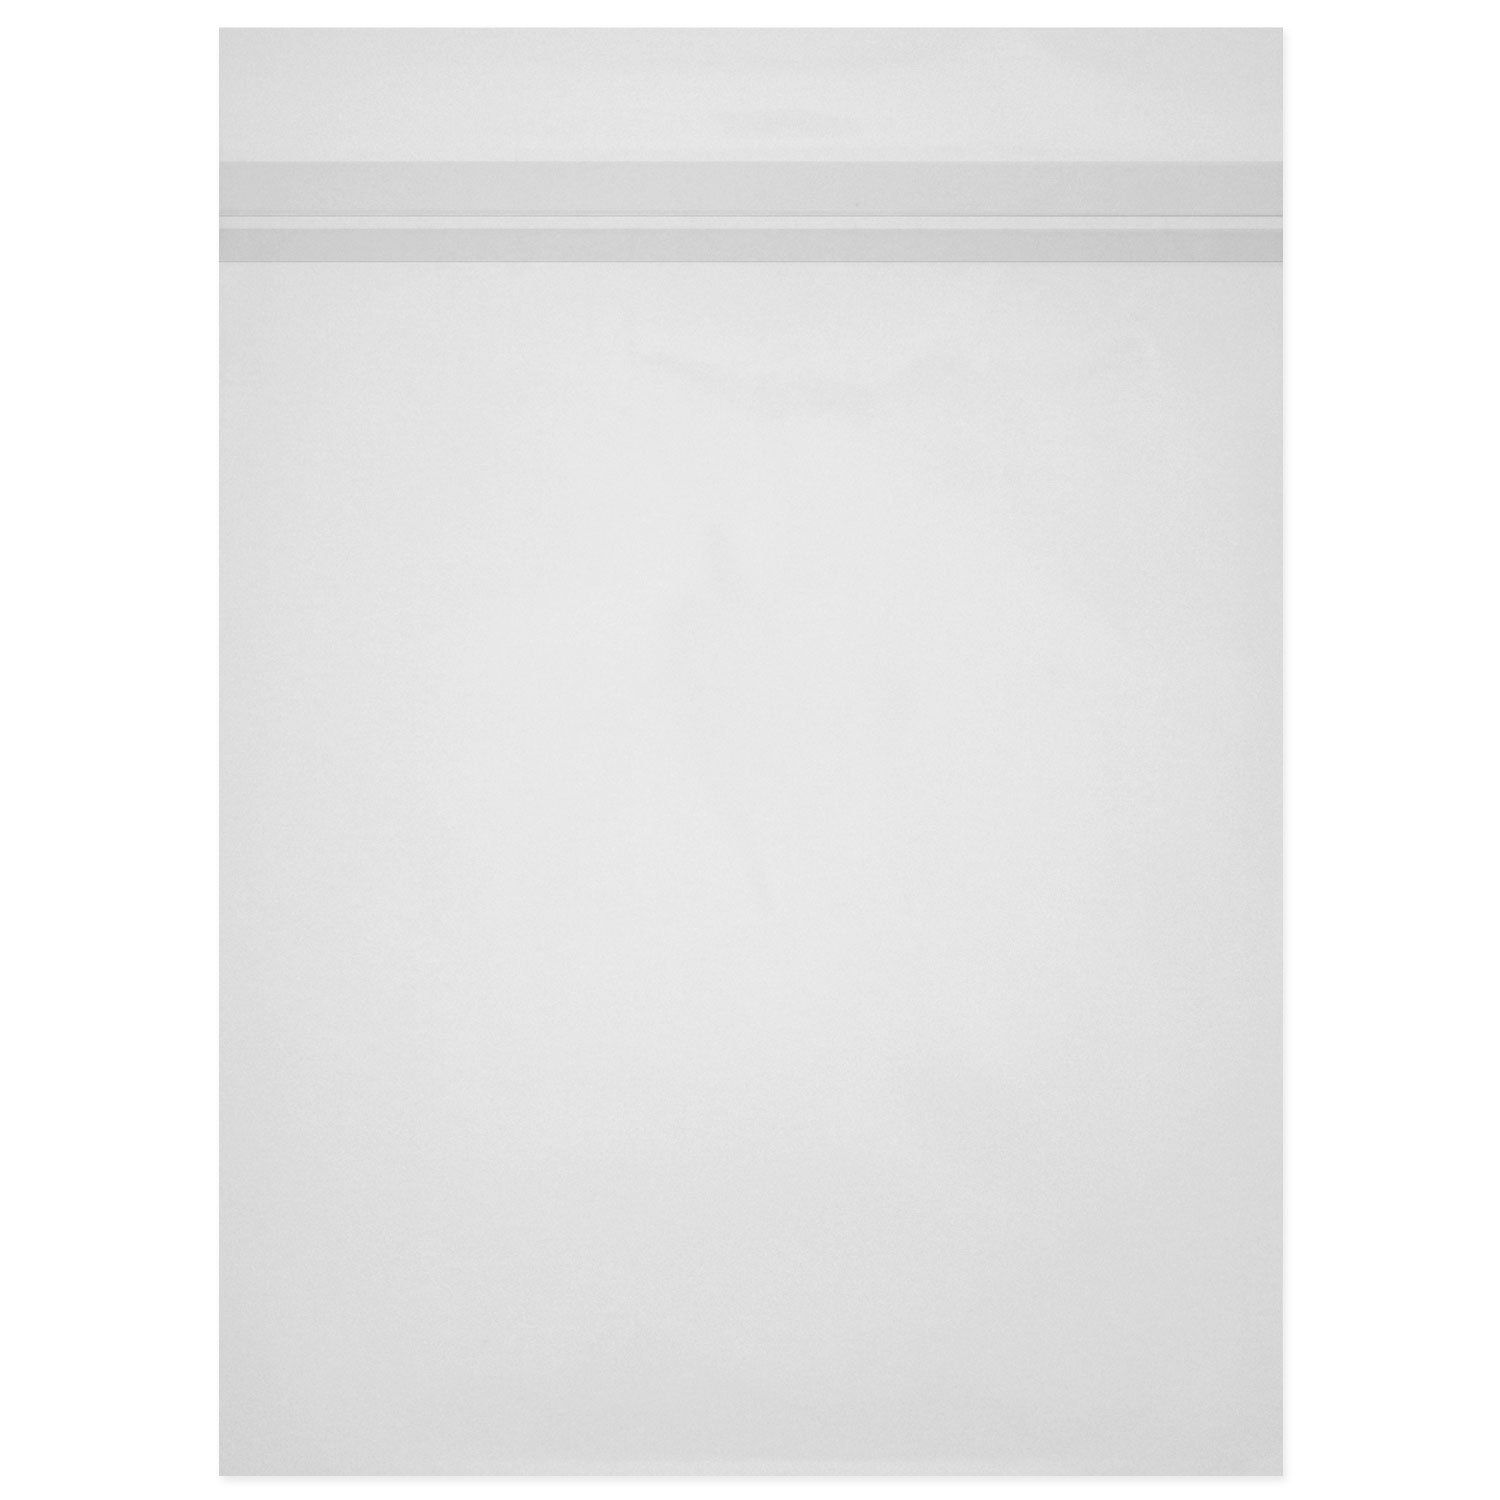 Includes a White Core Bevel Cut Mattes for 11X14 Photos by US Art Supply US Art Supply Art Mats Brand Premier Acid-Free Pre-Cut 16X20 White Picture Mat Matte Sets Backers /& Crystal Clear Plastic Sleeves Bags